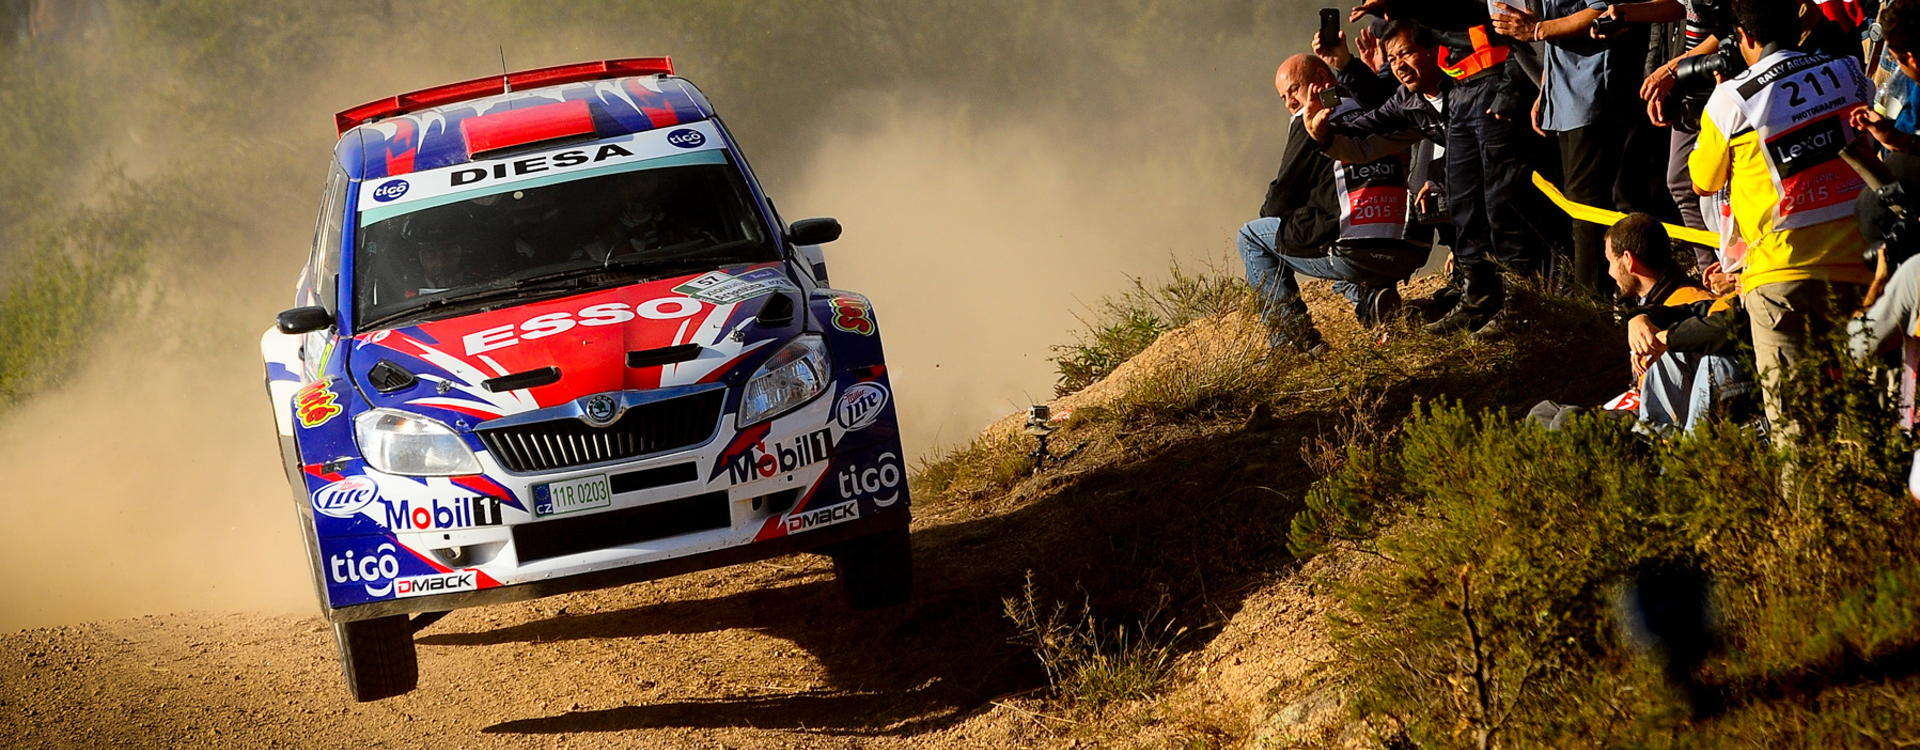 WRC Rally Argentina: The classic with the revamped route